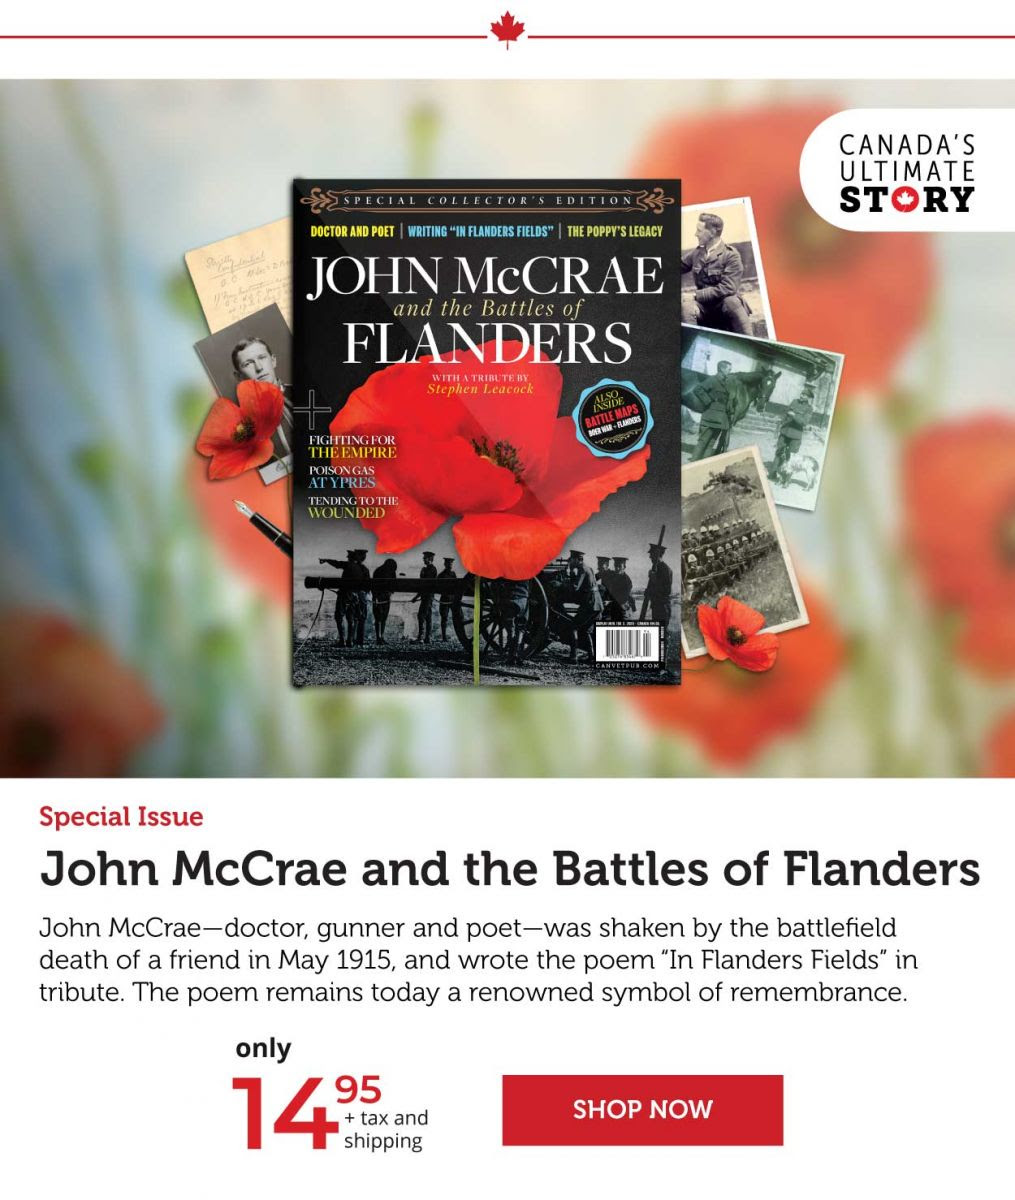 John McCraw and the Battles of Flanders